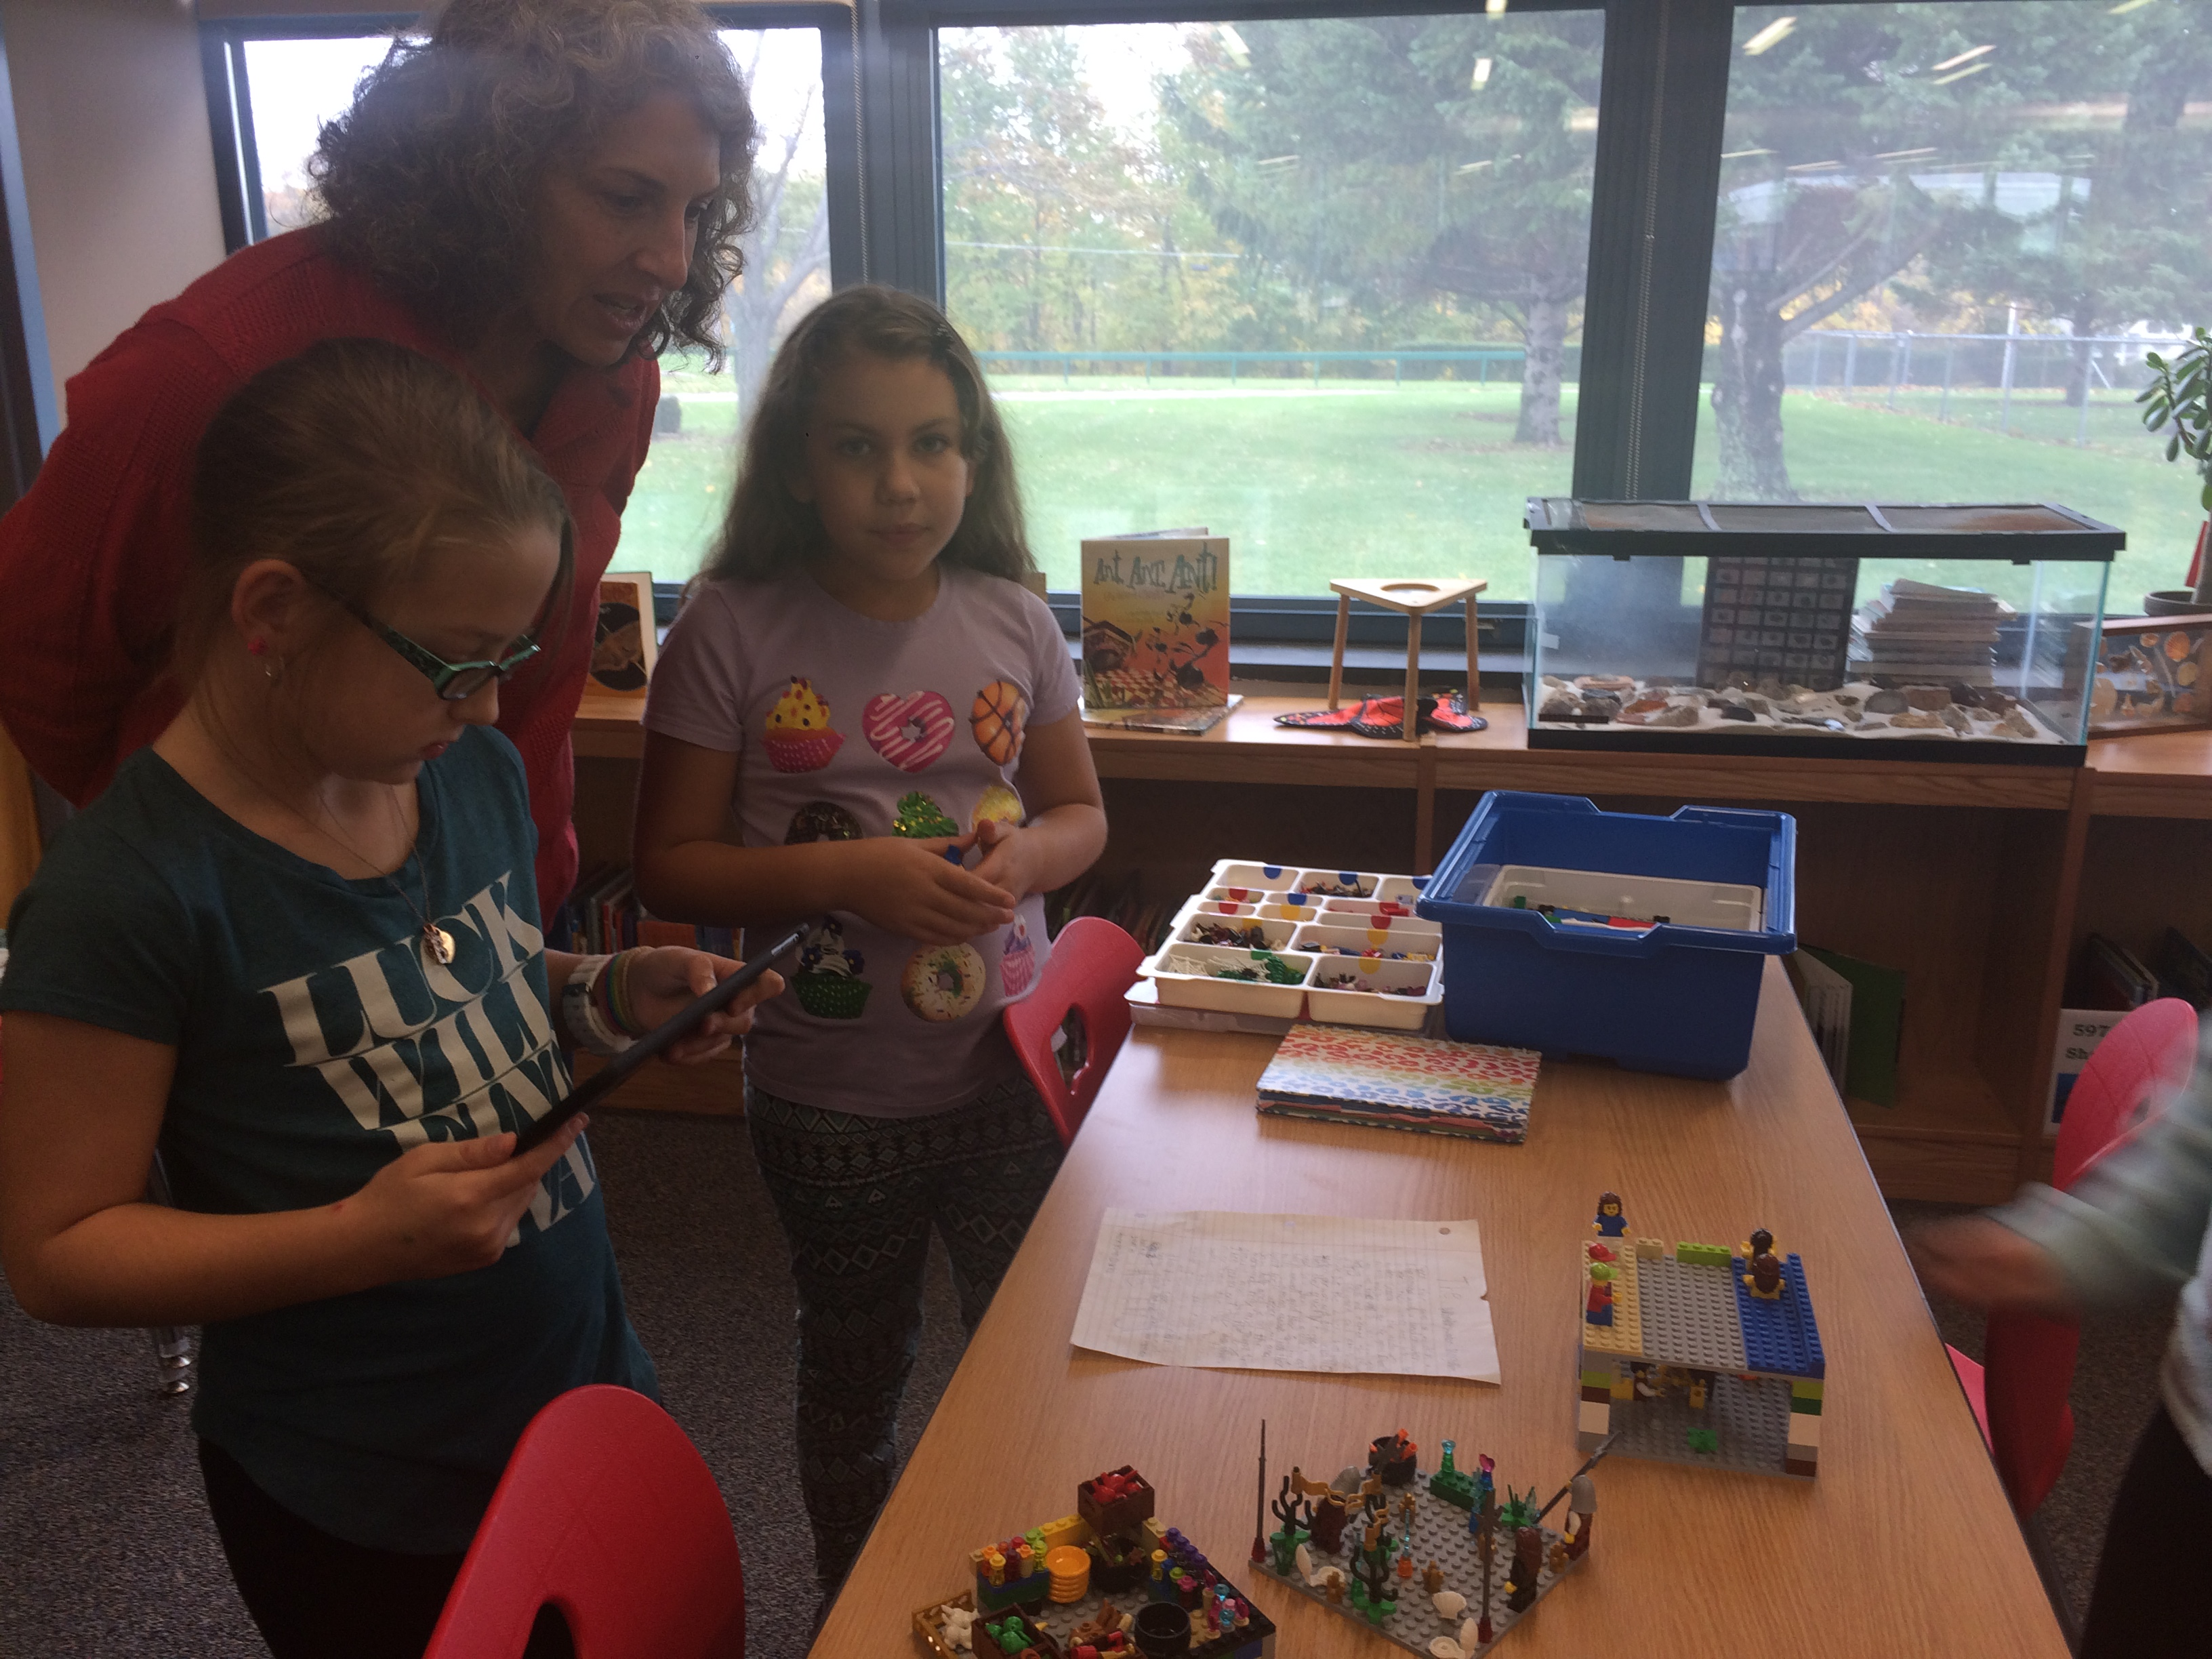 Students using makerspace materials